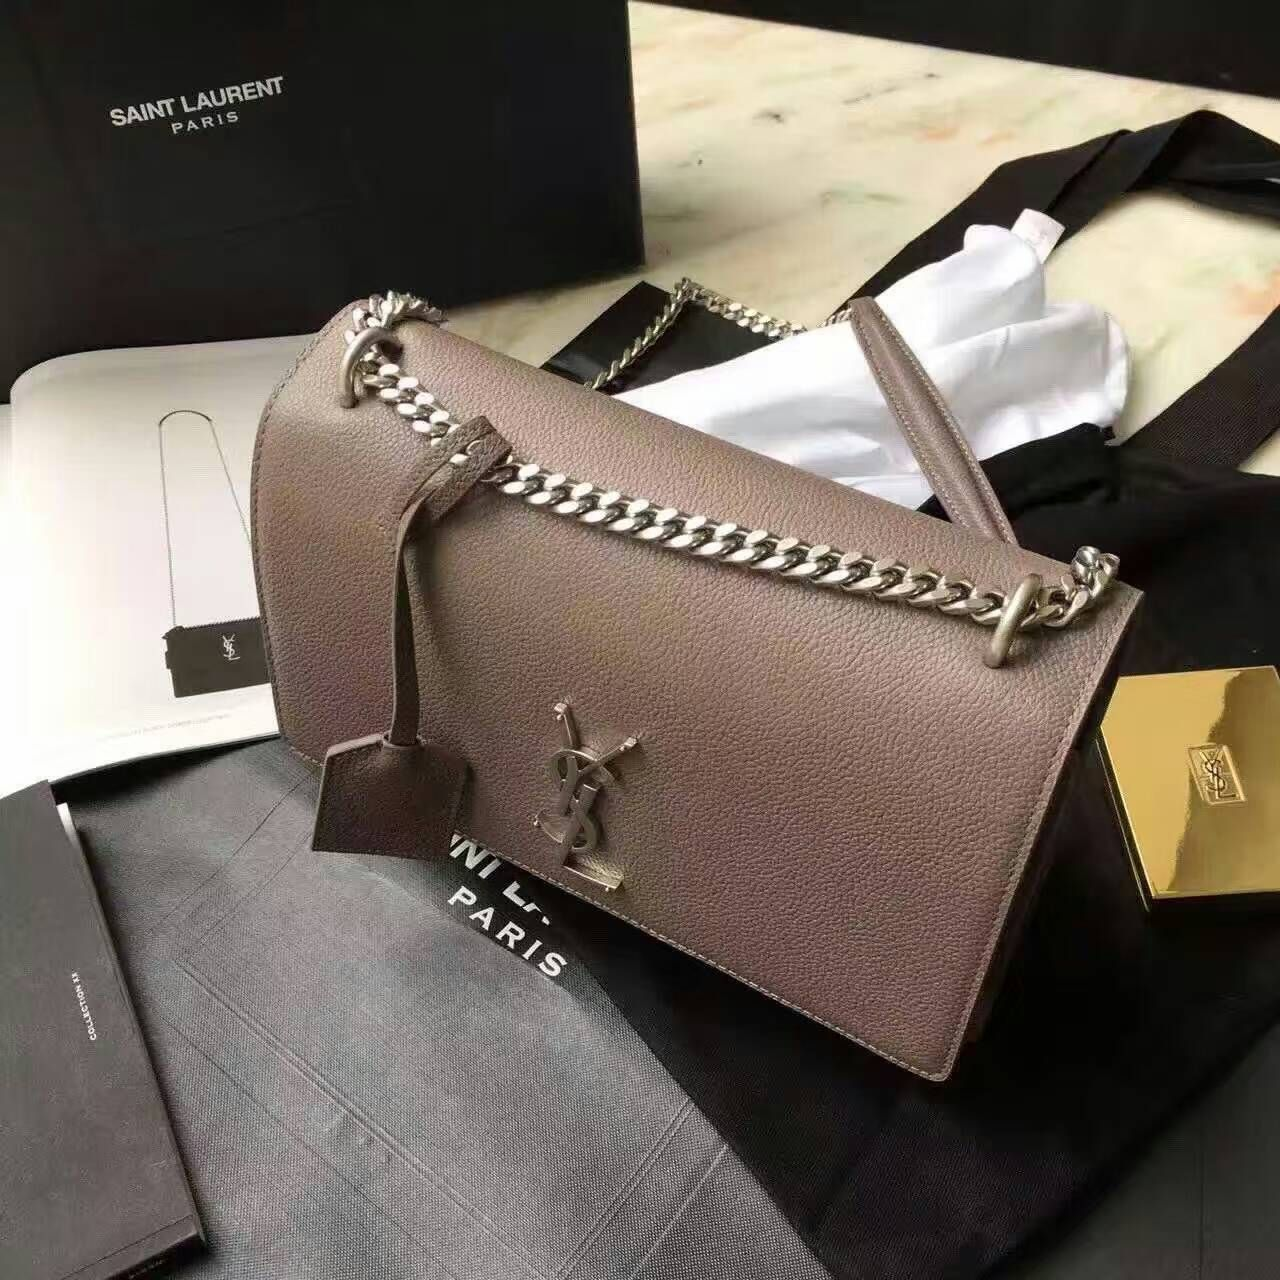 864ac090ae08 Limited Edition!2016 Saint Laurent Bags Cheap Sale-Saint Laurent Medium  Sunset Monogram Bag in Taupe Grained Leather